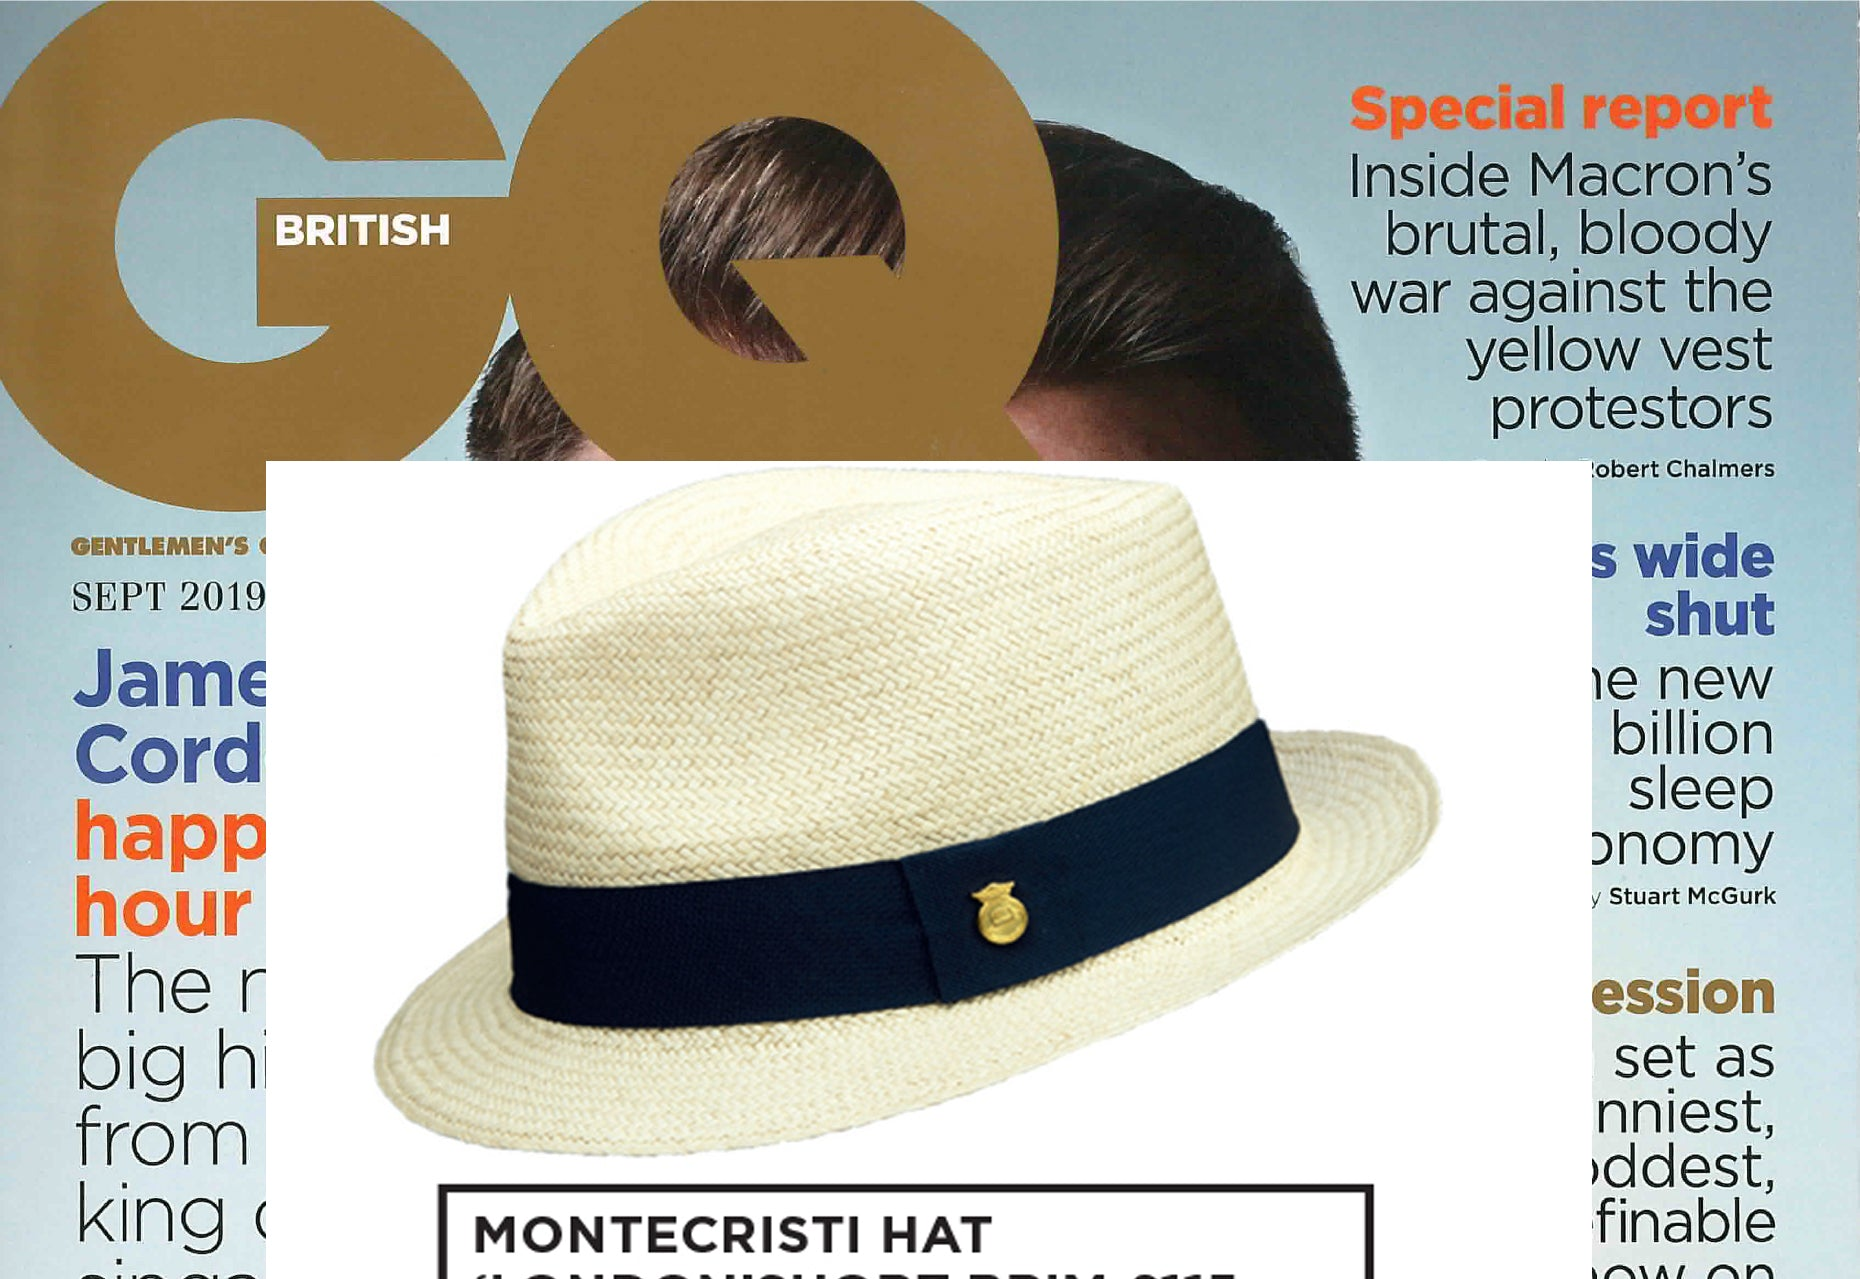 AS FEATURED IN BRITISH GQ, SPECIAL EDITION SEPT ISSUE 2019